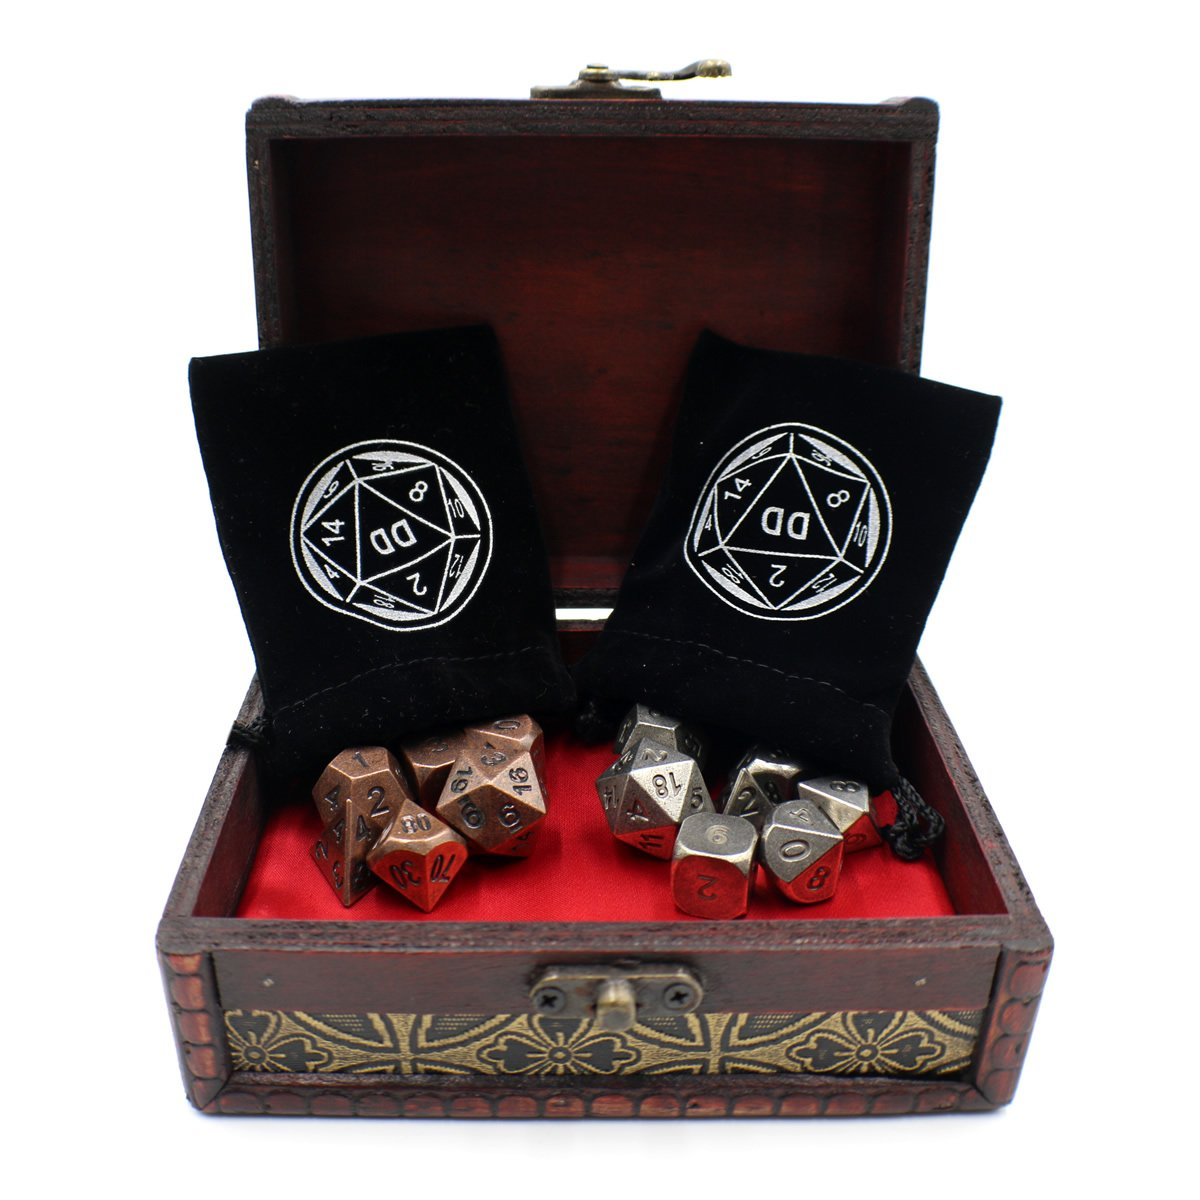 Twin Role Playing Metal Dice Sets with Storage Chest for Tabletop Games by Dahan Dice (Image #3)